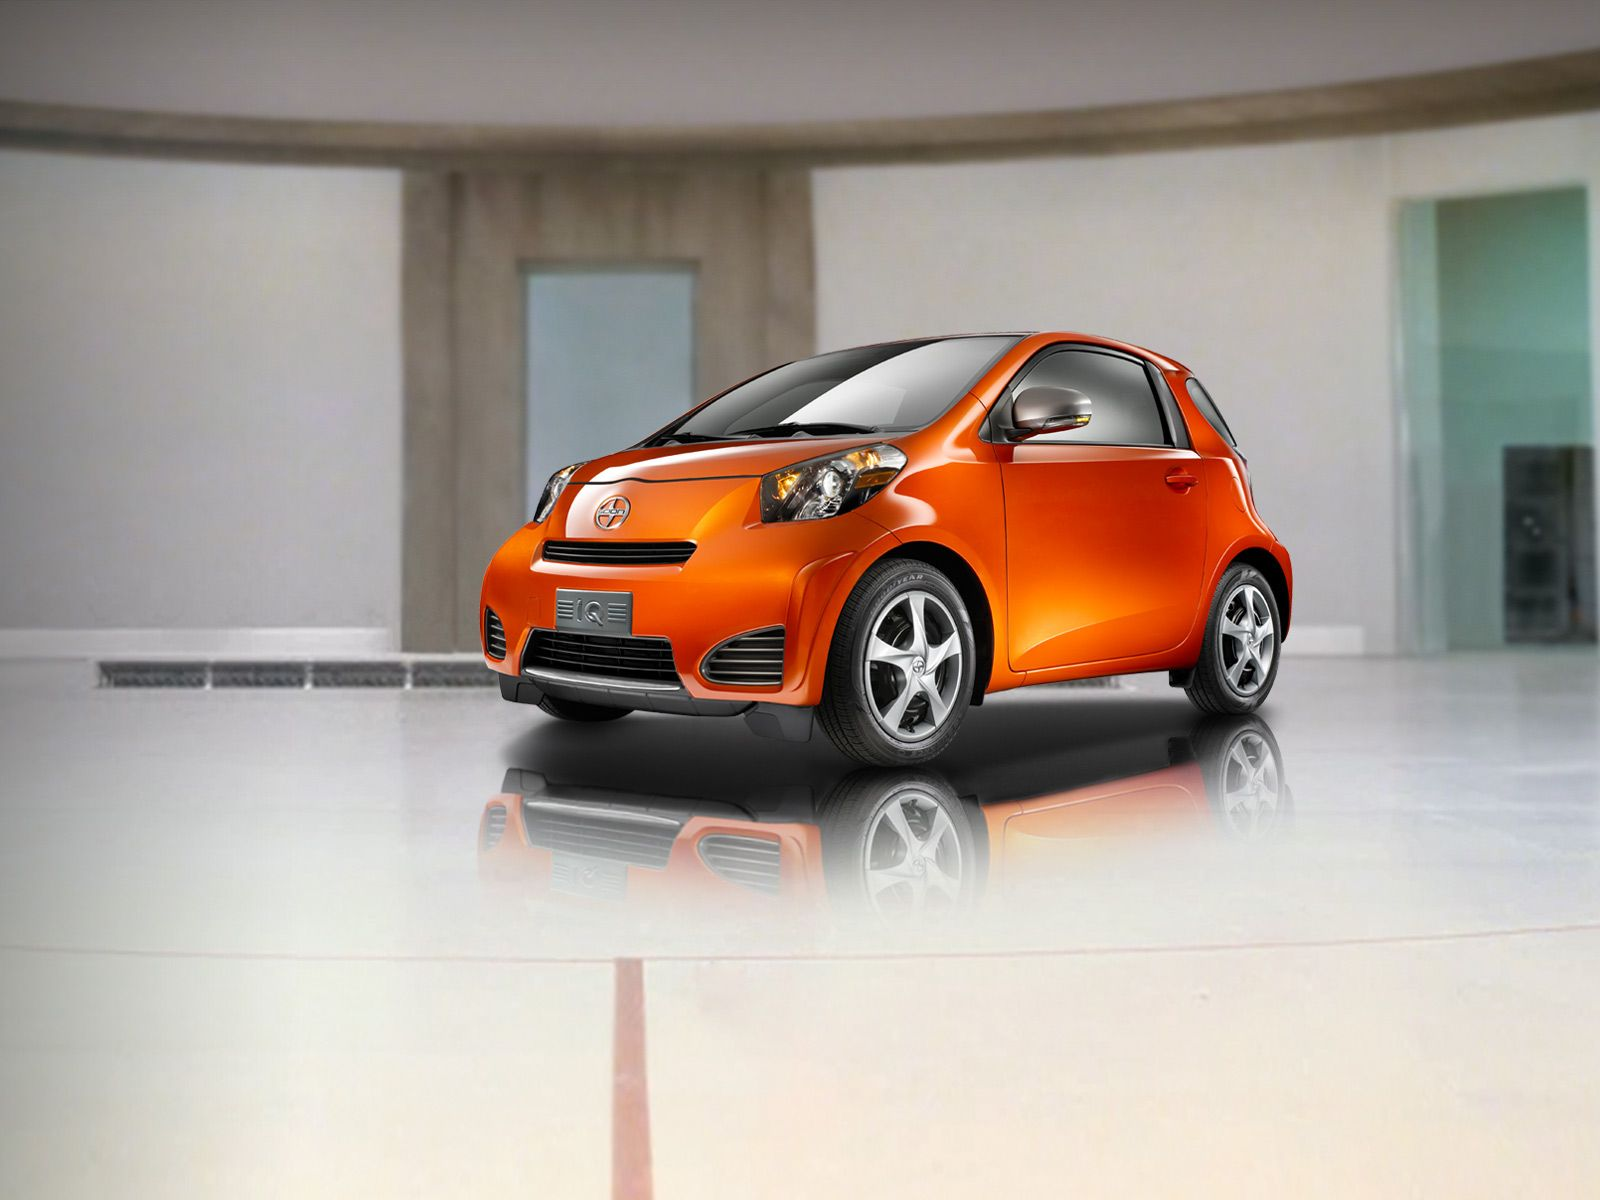 Scion Iq Therefore I Am 15 995automatic Msrp Estimated Mpg 36 City 37 Highway Don T Let Size Fool You This Little Car Is Scion Cars Scion Small Cars